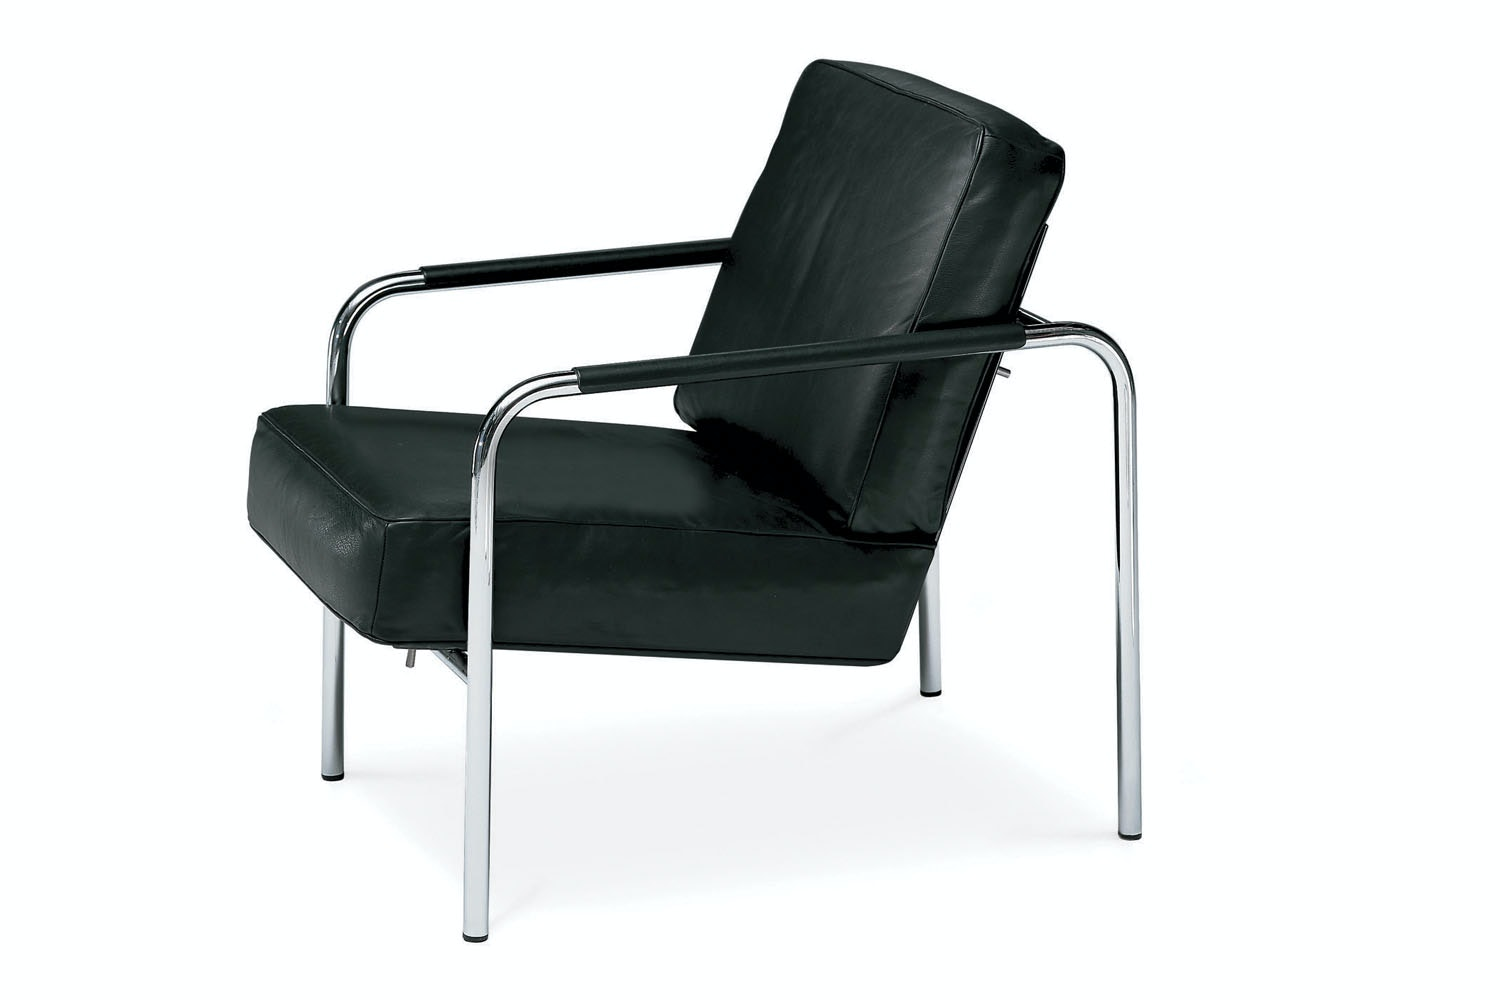 Susanna Armchair by Gabriele Mucchi for Zanotta